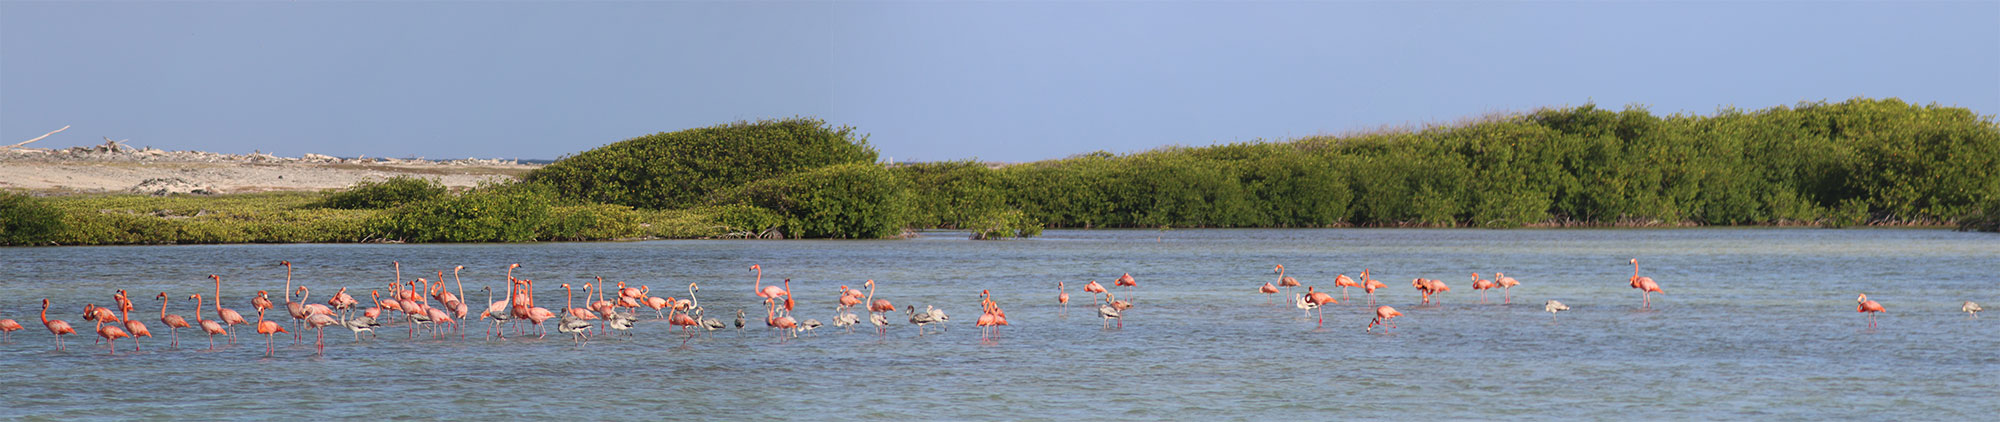 flamingos panorama